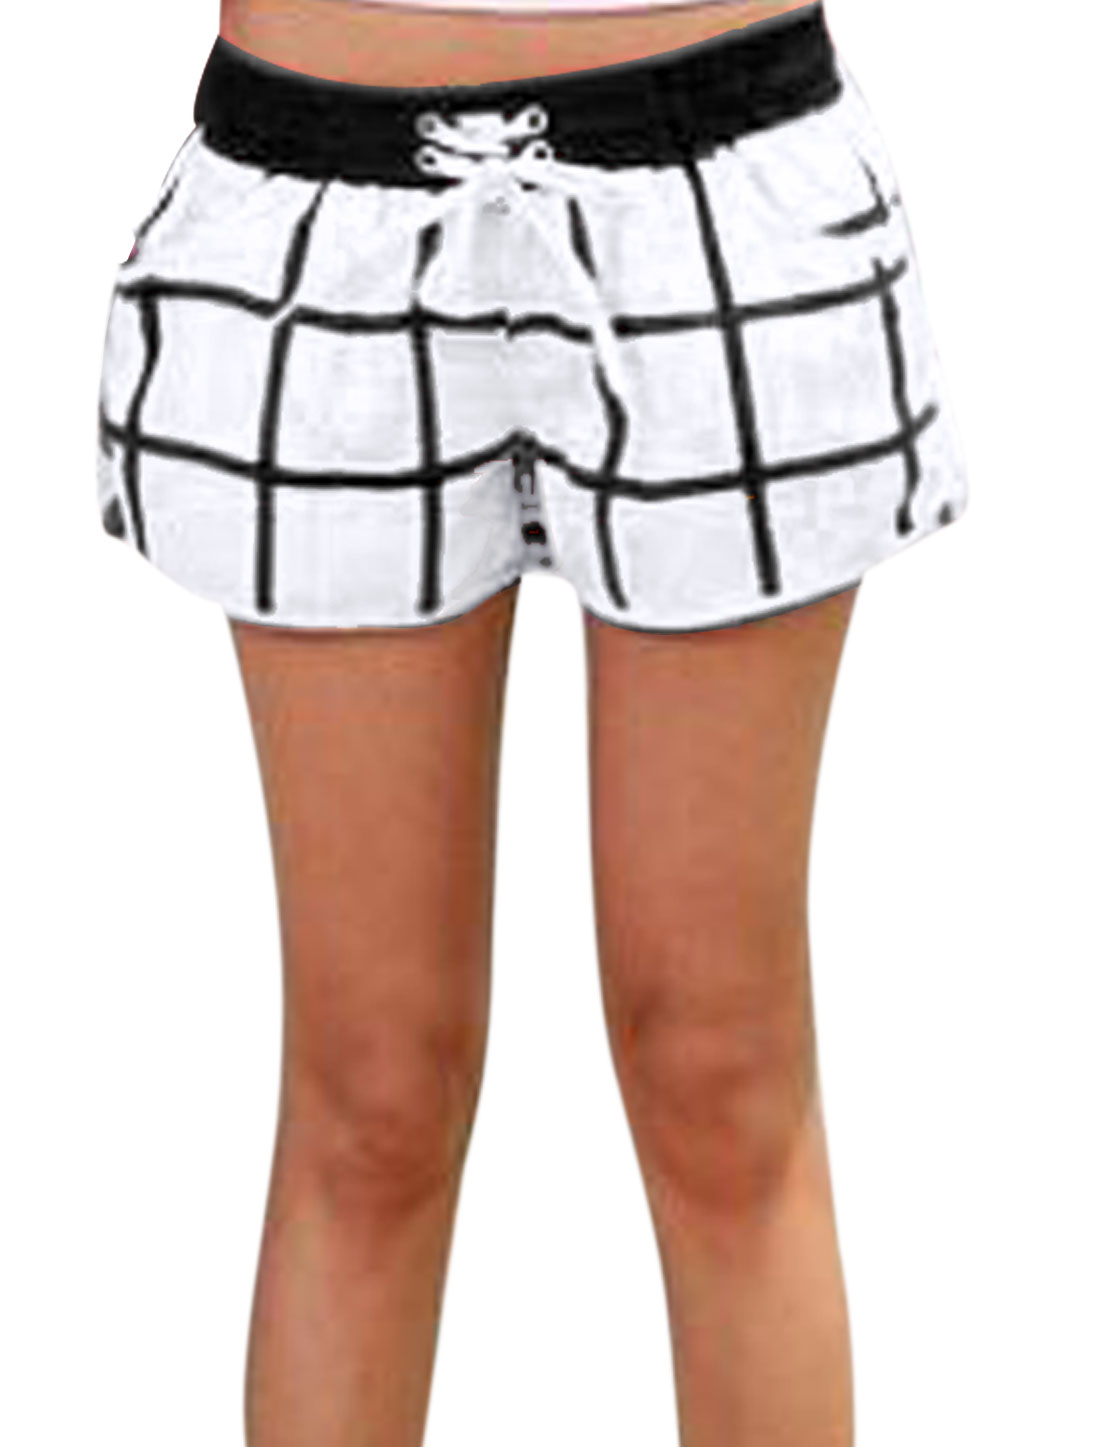 Women Elastic Waist Drawstring Two Tone Color Block Shorts S White Black